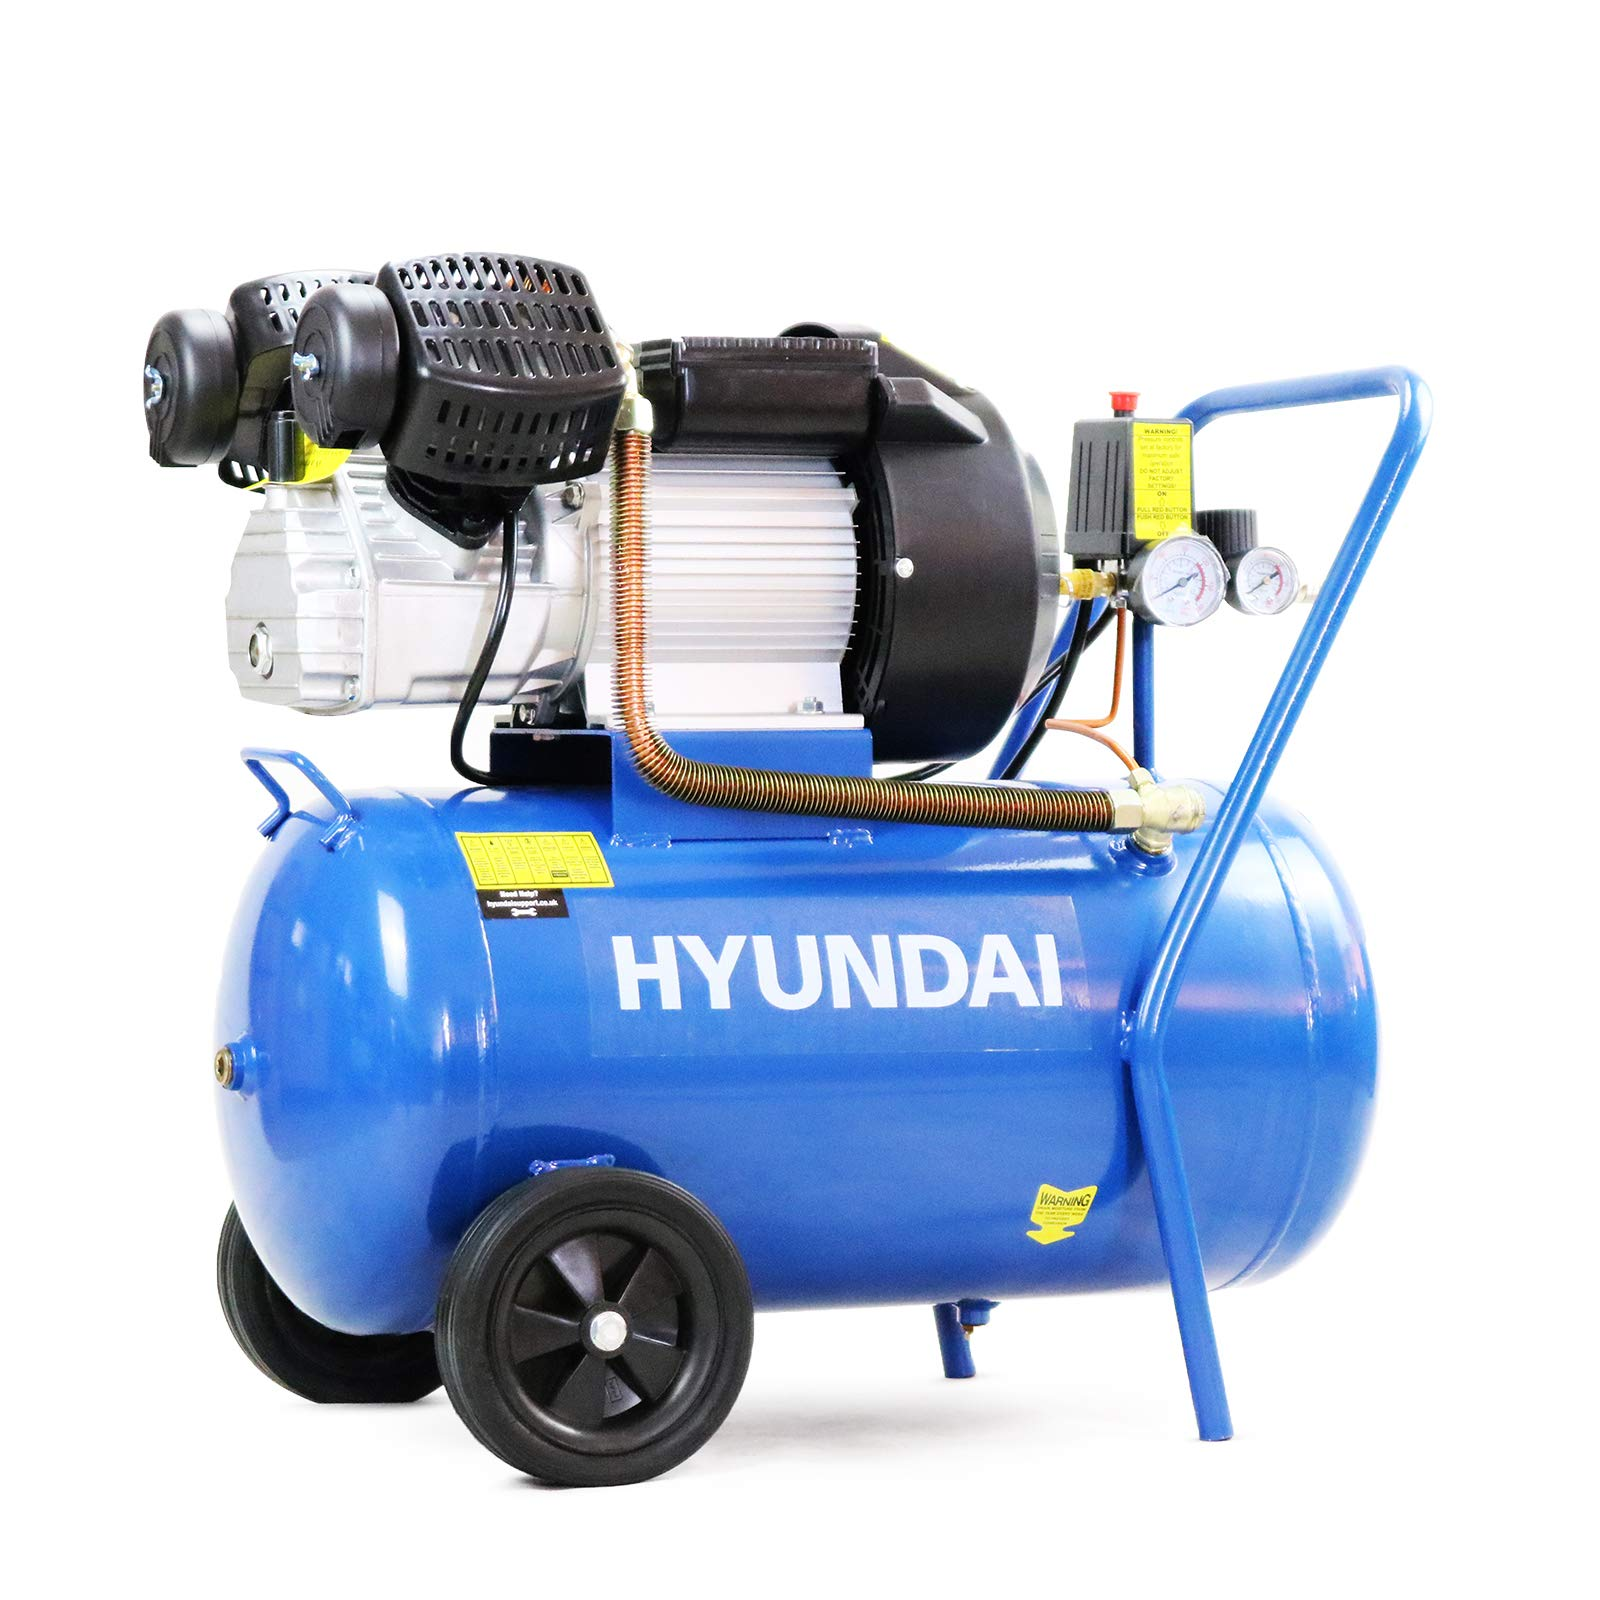 SwitZer Air Compressor 3HP 13CFM 100L Litre LTR 50HZ 230V 8 Bar Tank Twin Cylinder Pump with Wheel Handle SZ-AC-007 Grey